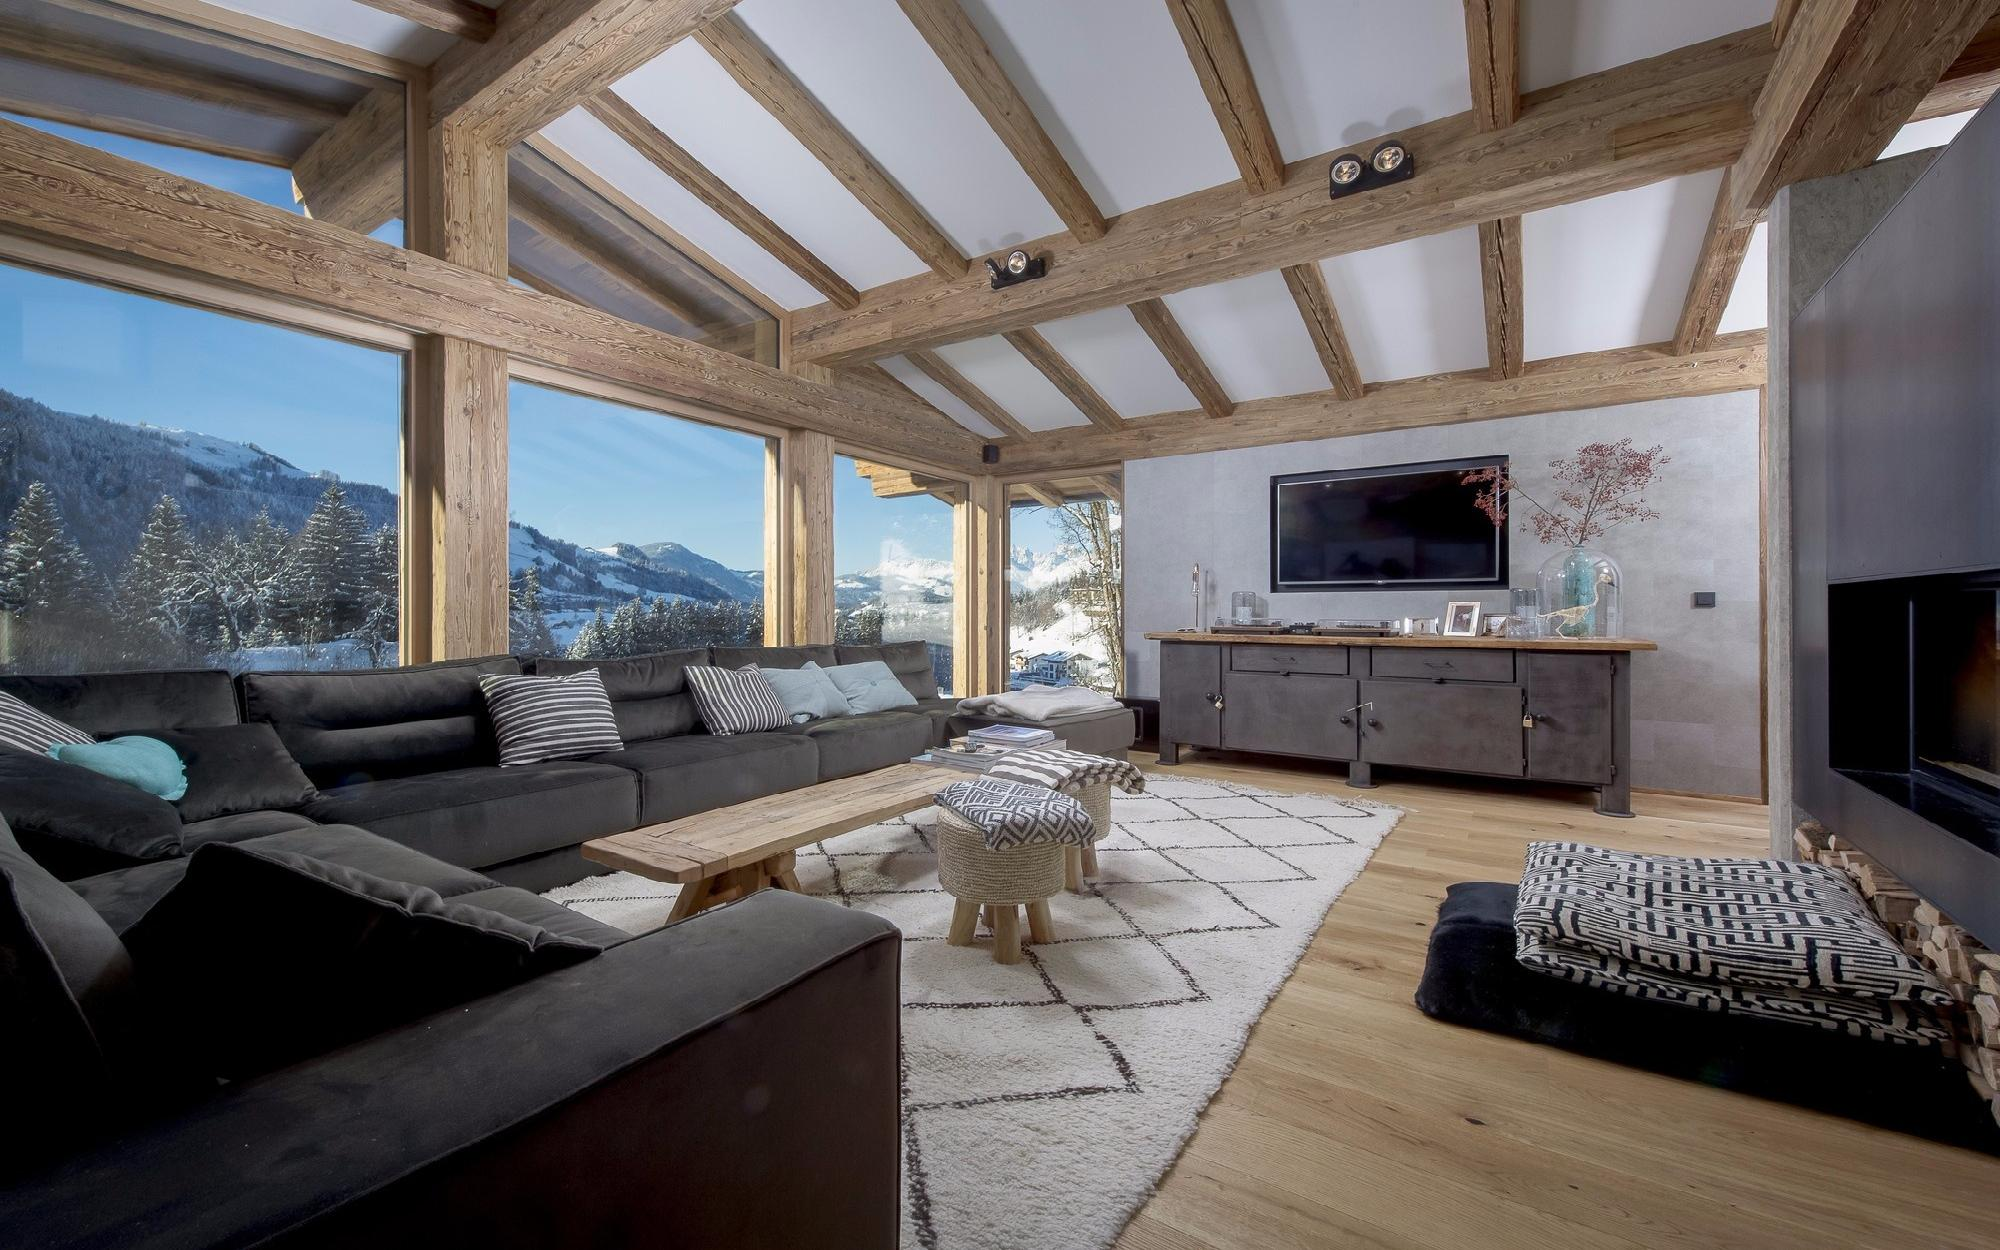 Newly built chalet with guest house in Kitzbühel For Sale - Kitzbuehel